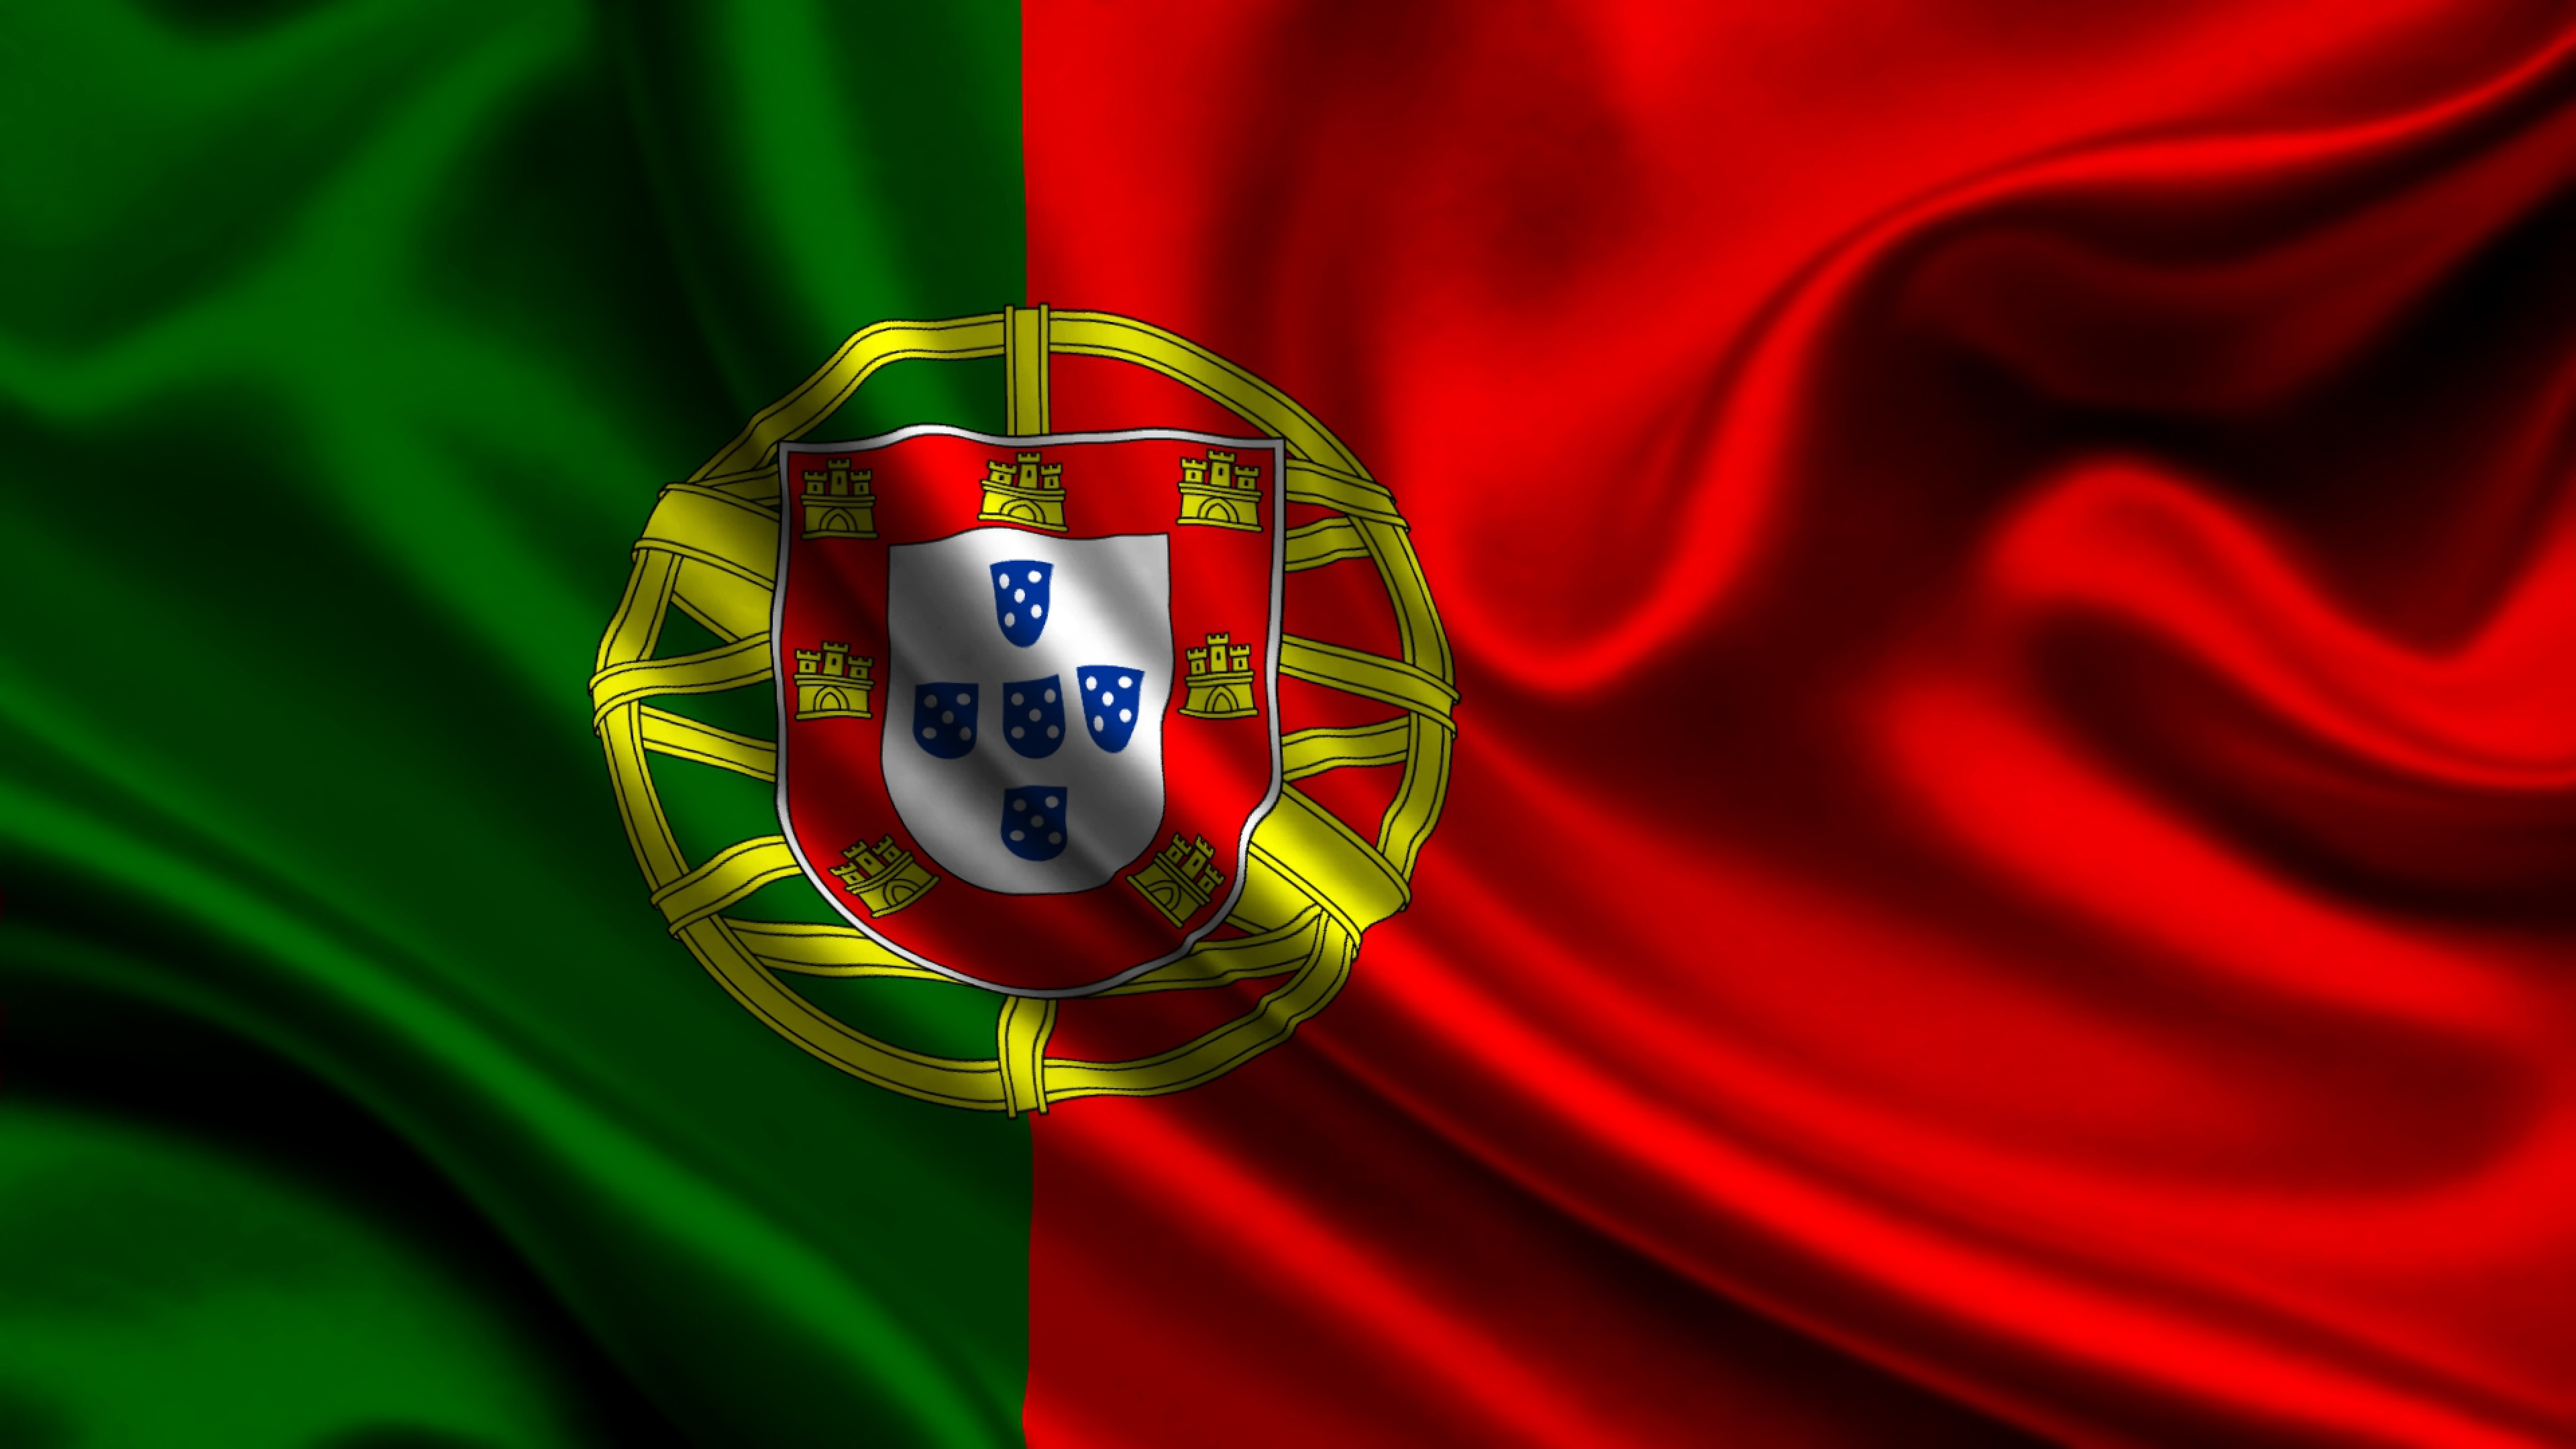 Portugal Flag and Description